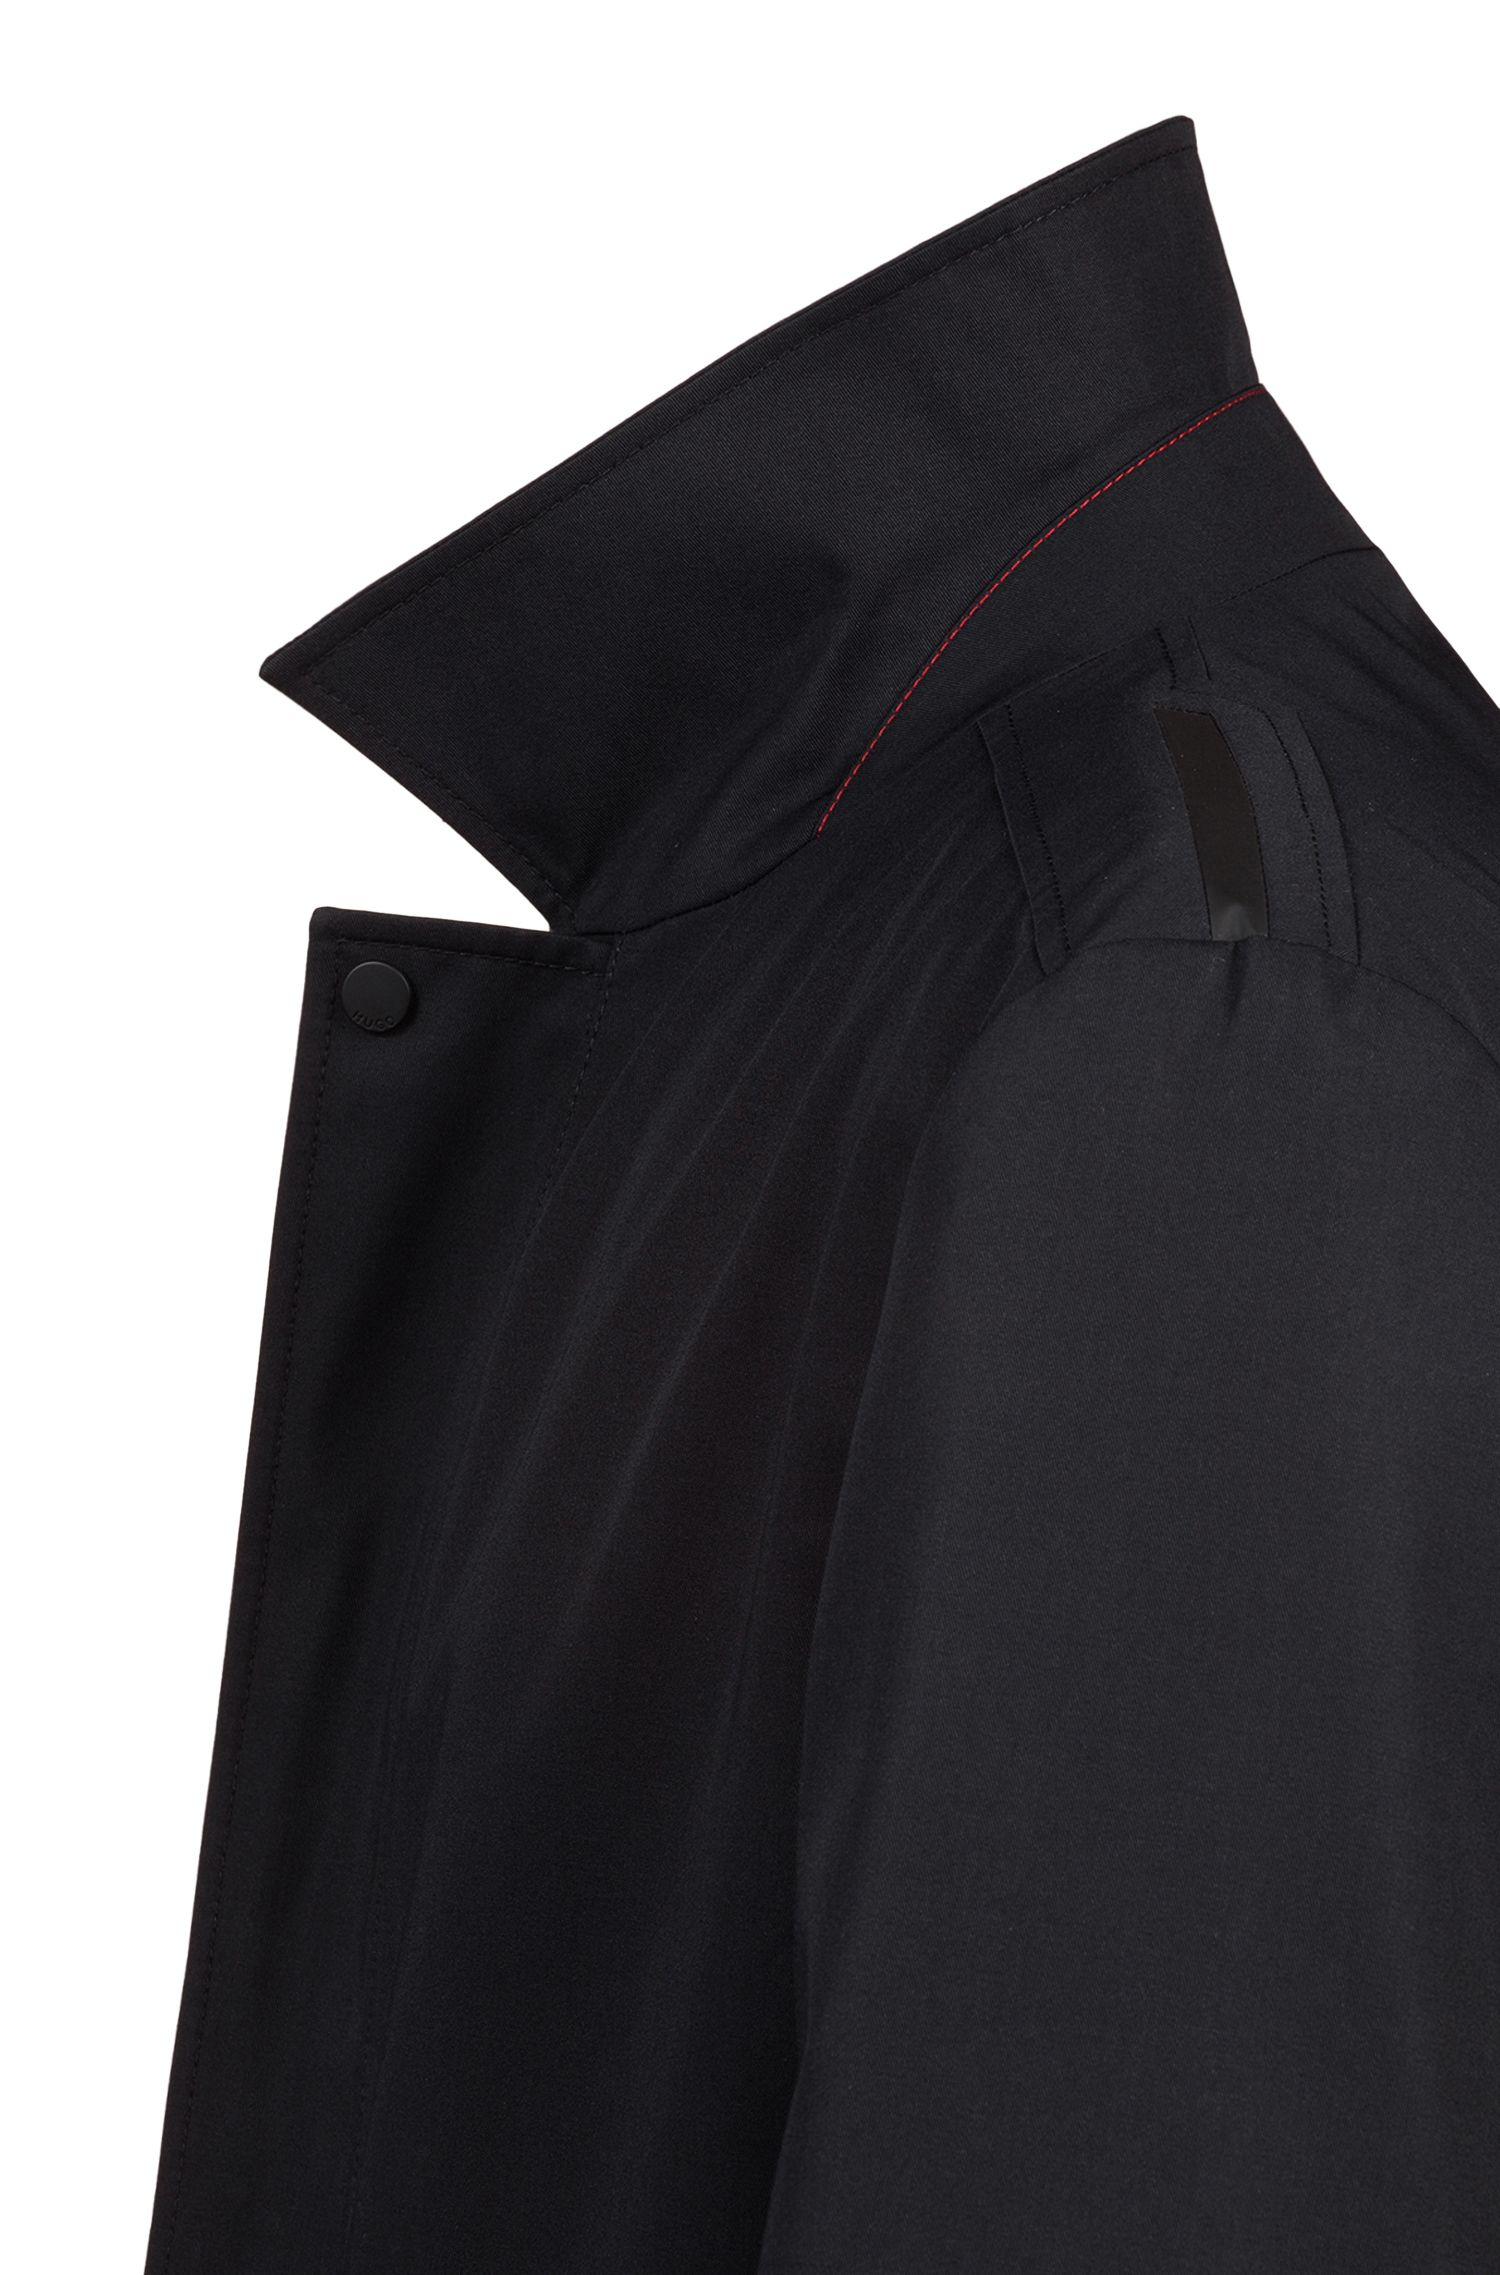 Water-repellent tailored coat with concealed zipper, Black